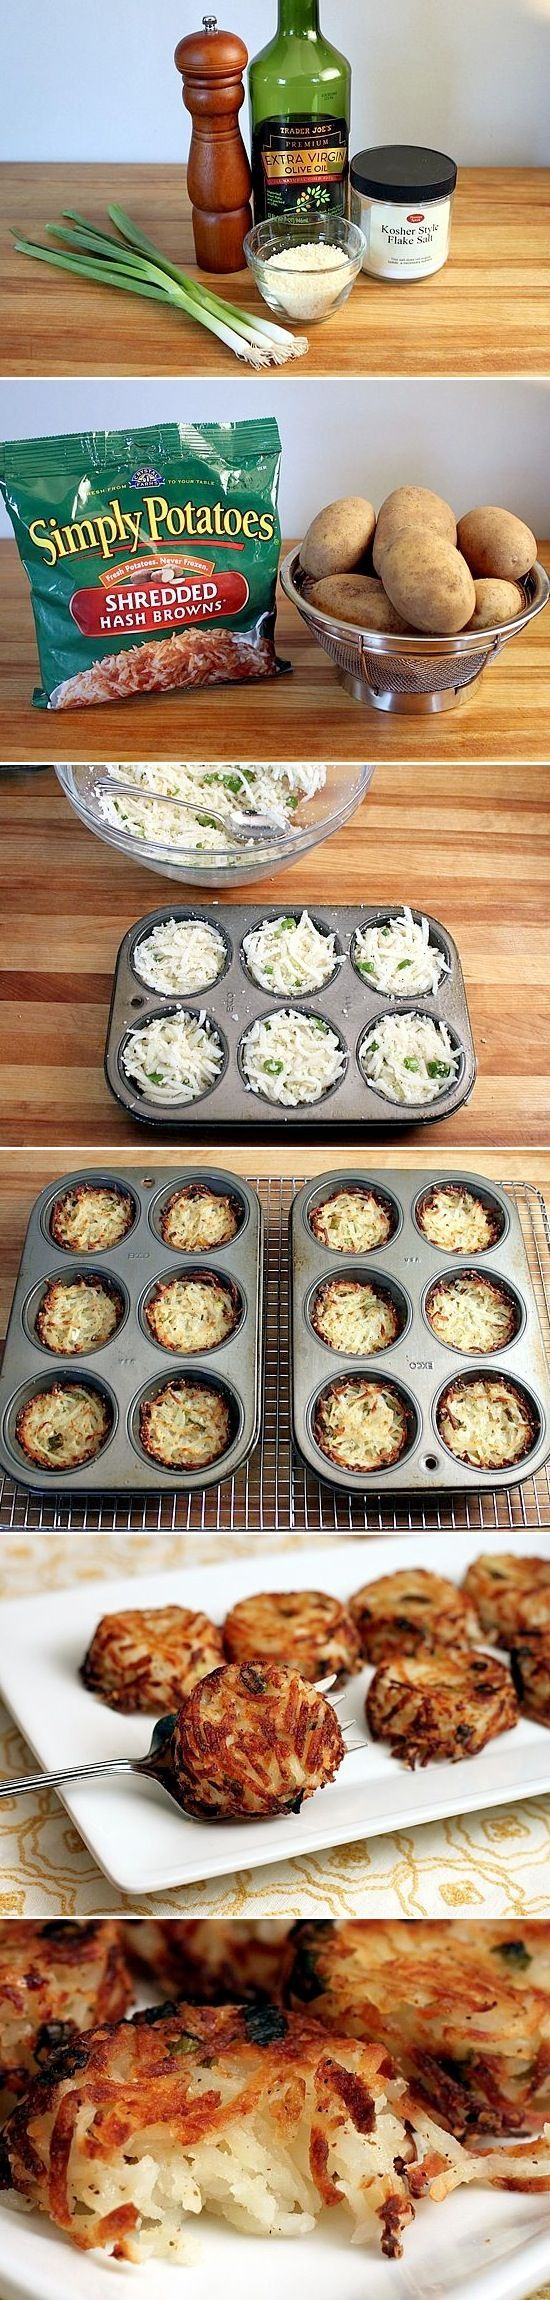 Parmesan Hash Brown Cups - super crispy and only a smidge of olive oil is used to help them crisp up and brown